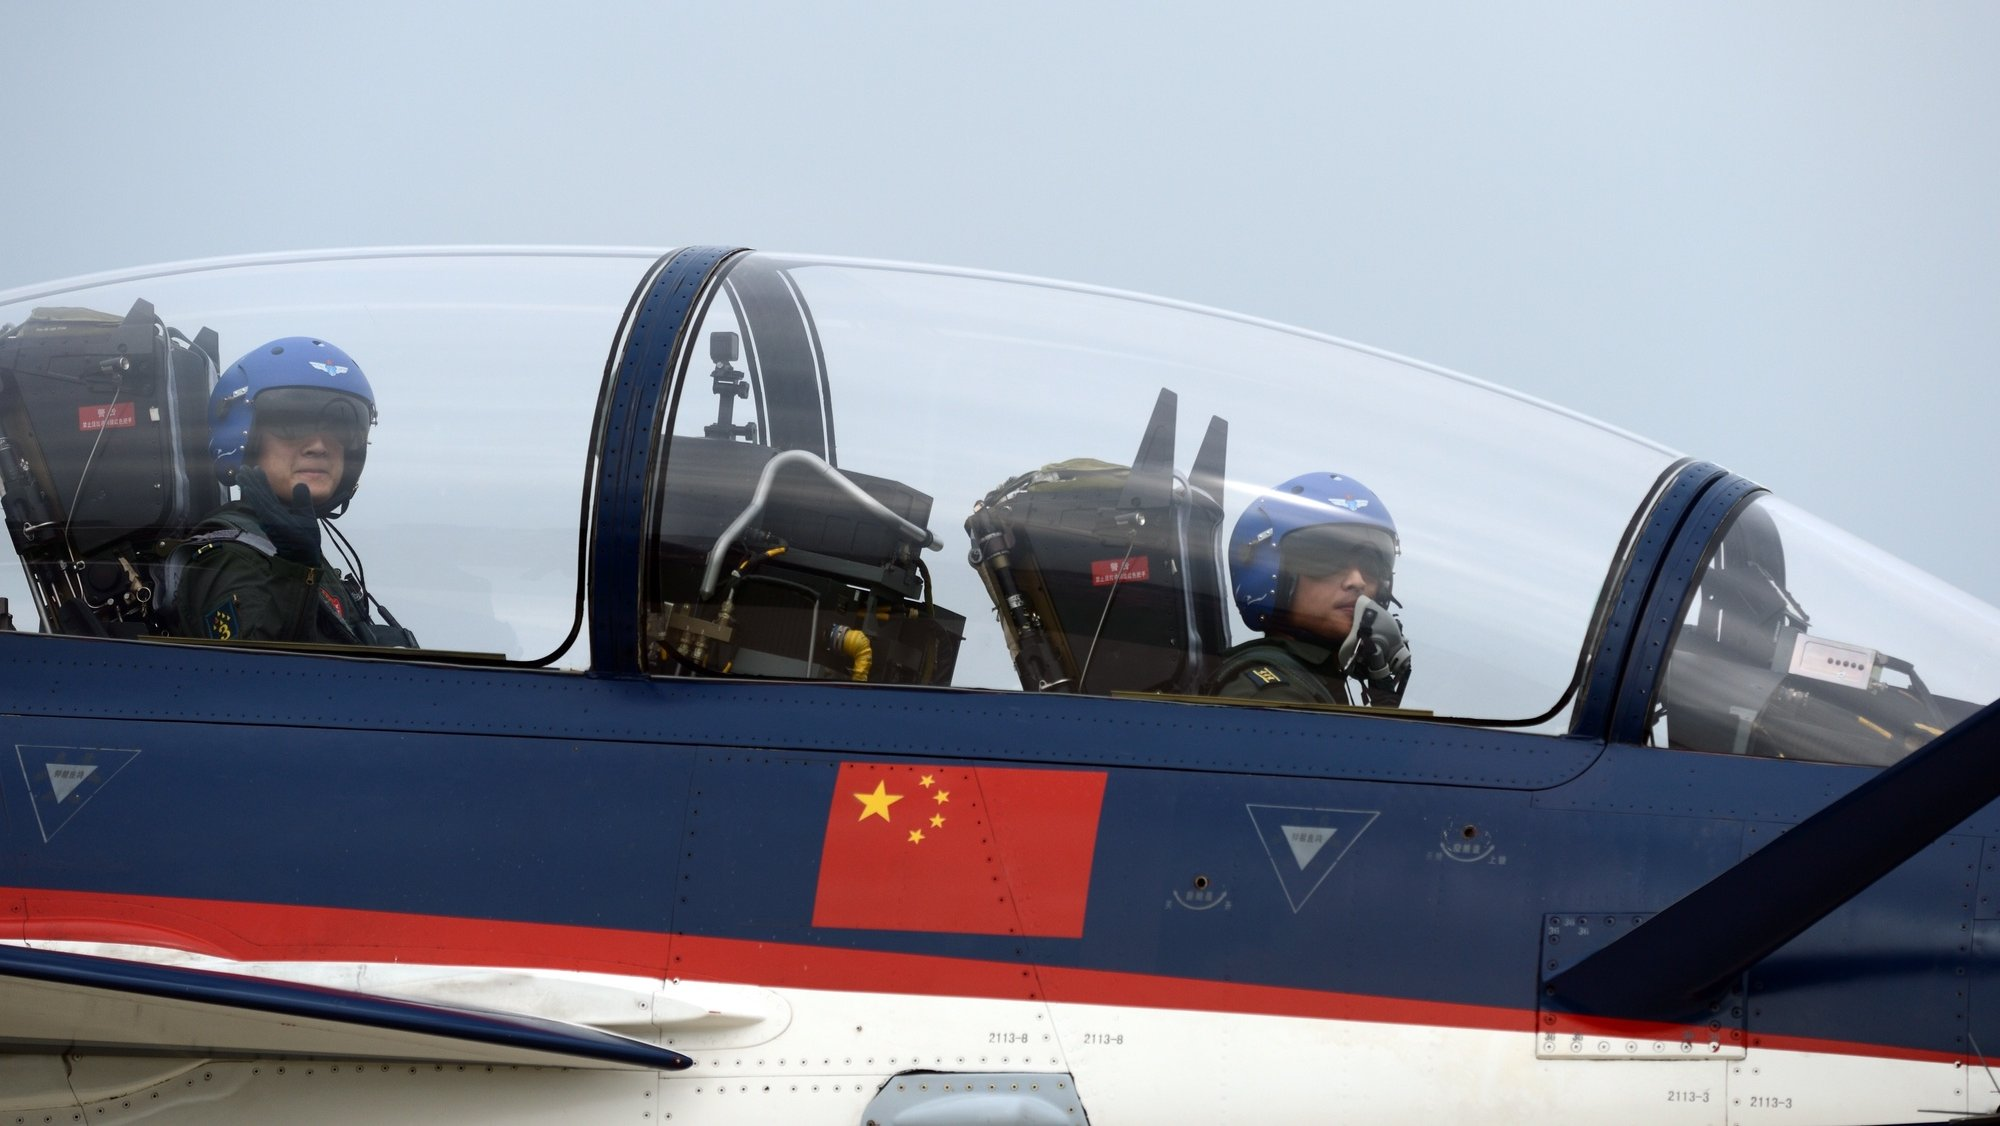 epa06998541 Members of the August 1st Aerobatic Team drive J-10 fighter jet to perform at Aviation University of Air Force during an aviation open day of the Air Force in Changchun, China's Jilin province, 02 September 2018 (issued 05 September 2018). The aviation open day of the Air Force of the CPLA and the opening ceremony for the Aviation University of Air Force (AUAF) was held at the Dafangshen Airport in Changchun from 30 August to 02 September 2018.  EPA/STRINGER CHINA OUT